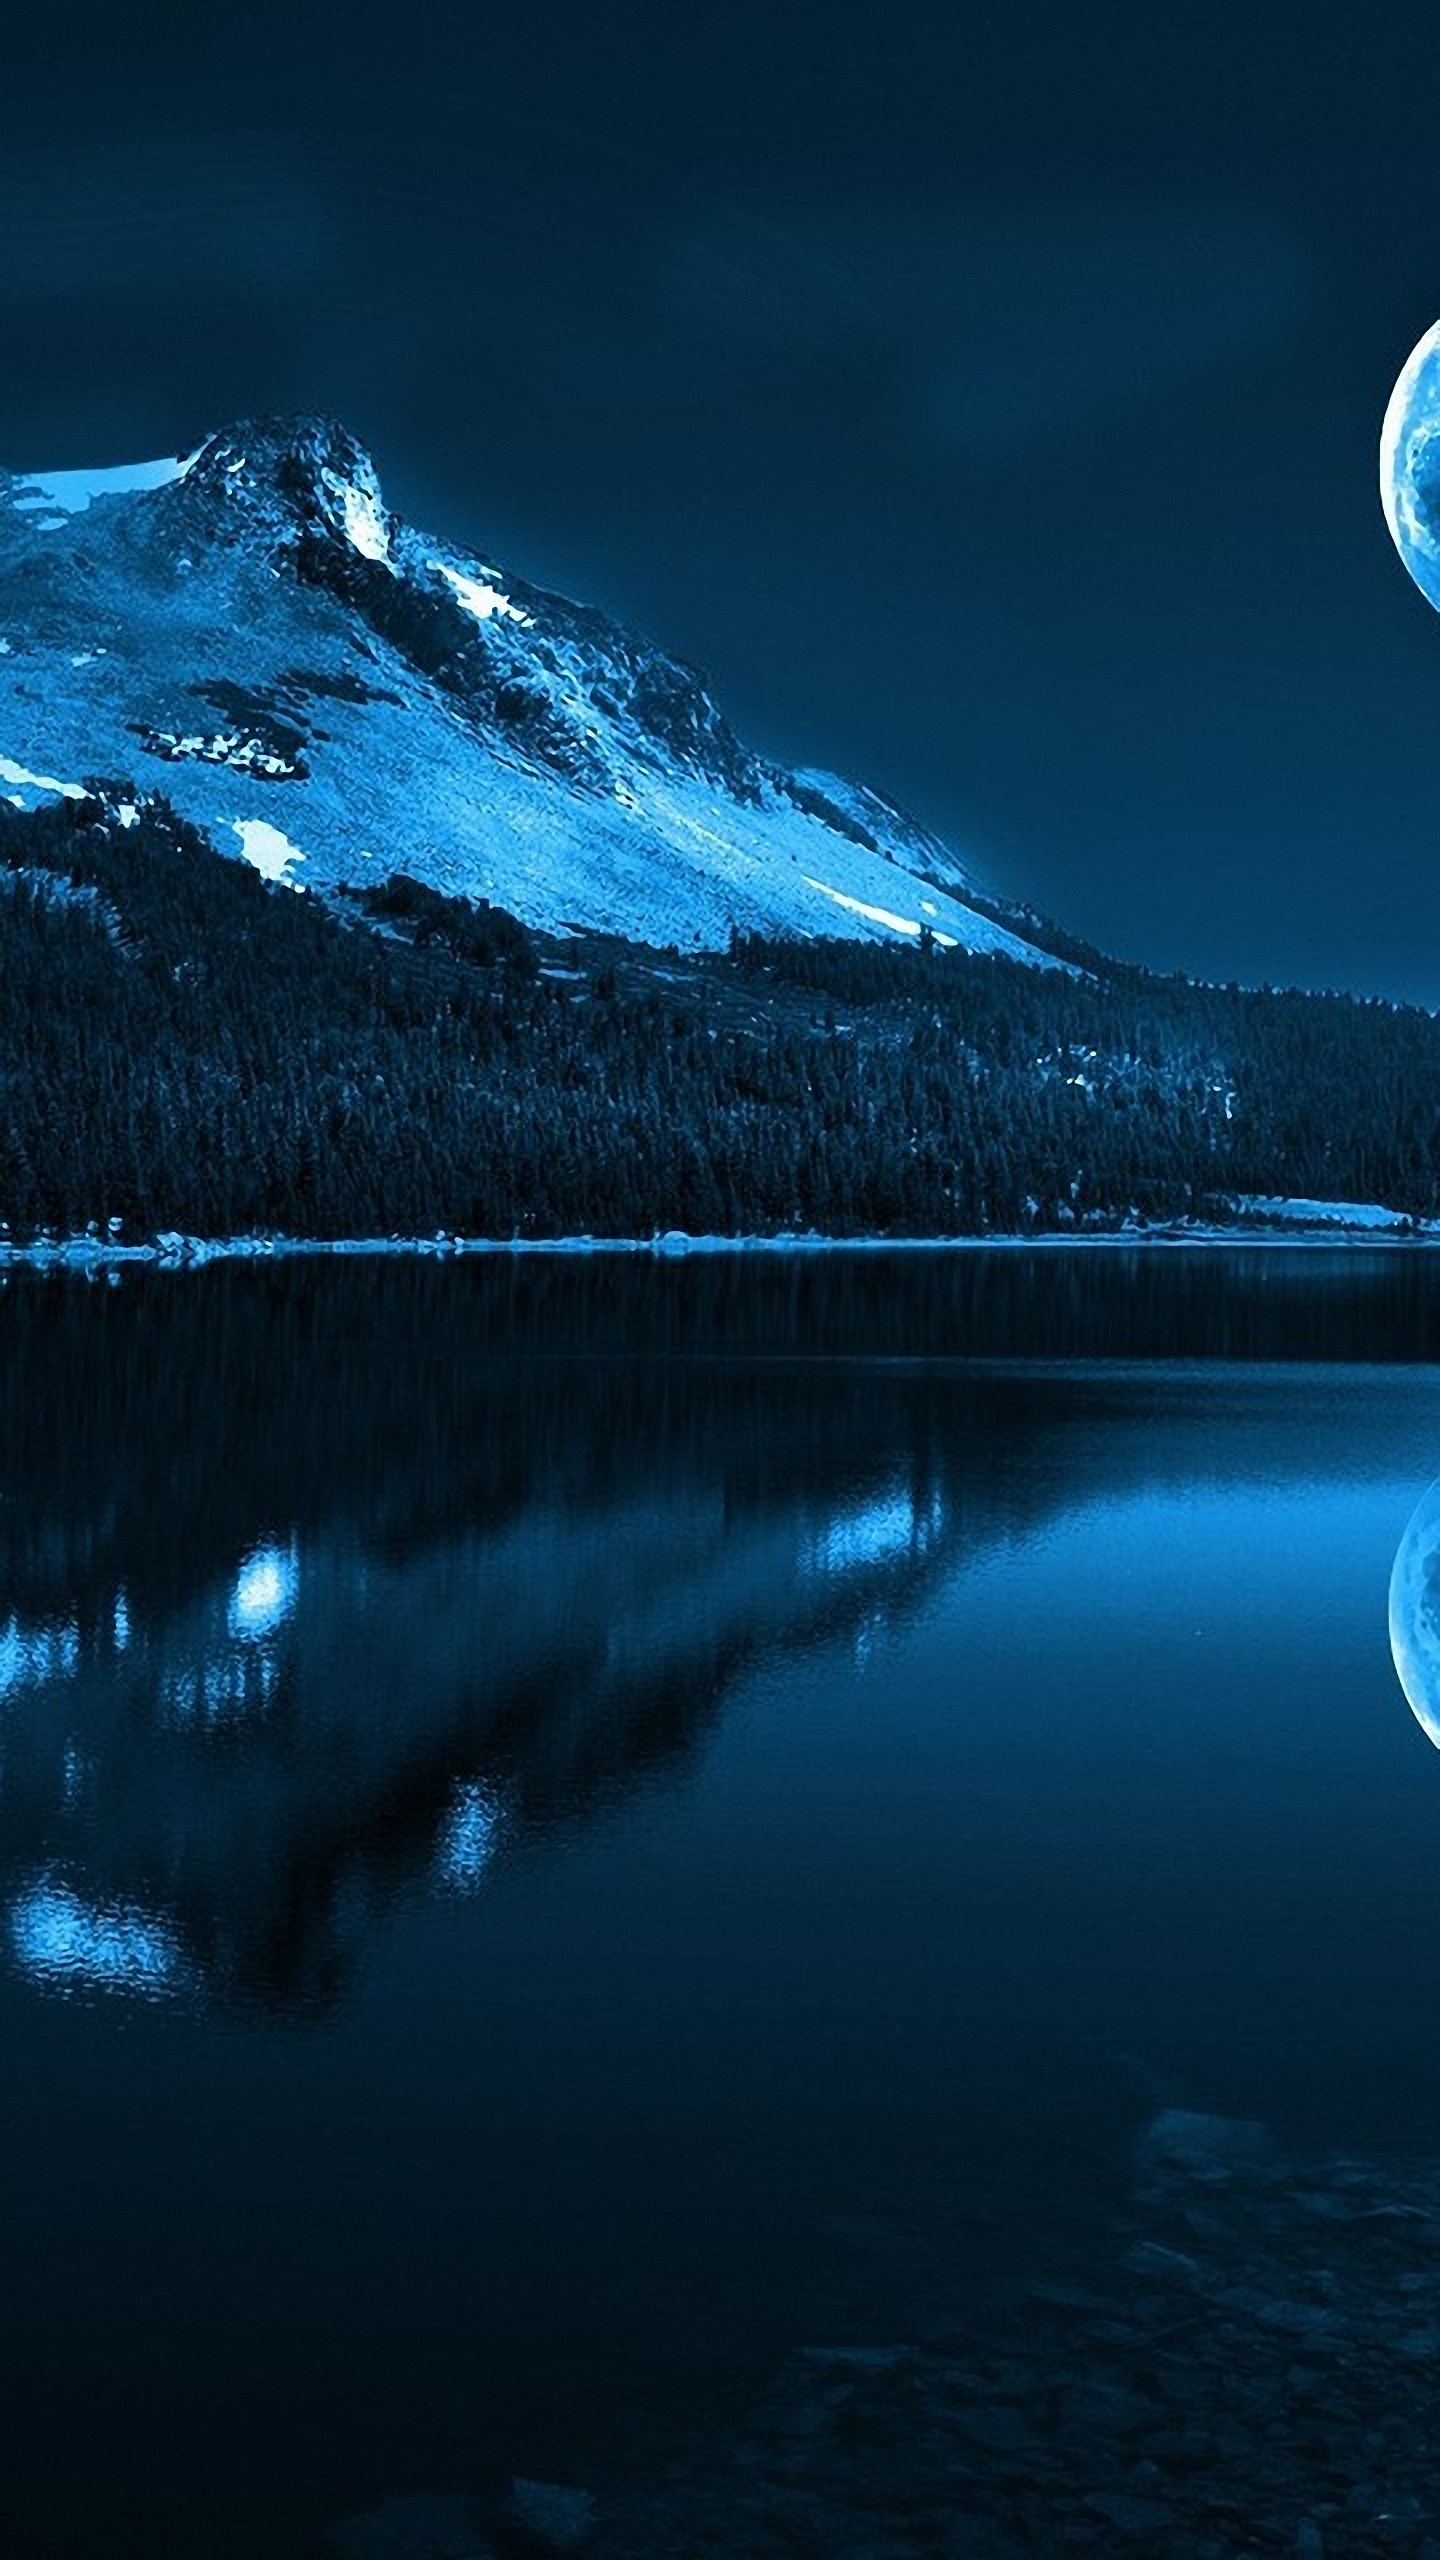 HD 1440x2560 full moon motorola moto wallpapers 1440x2560